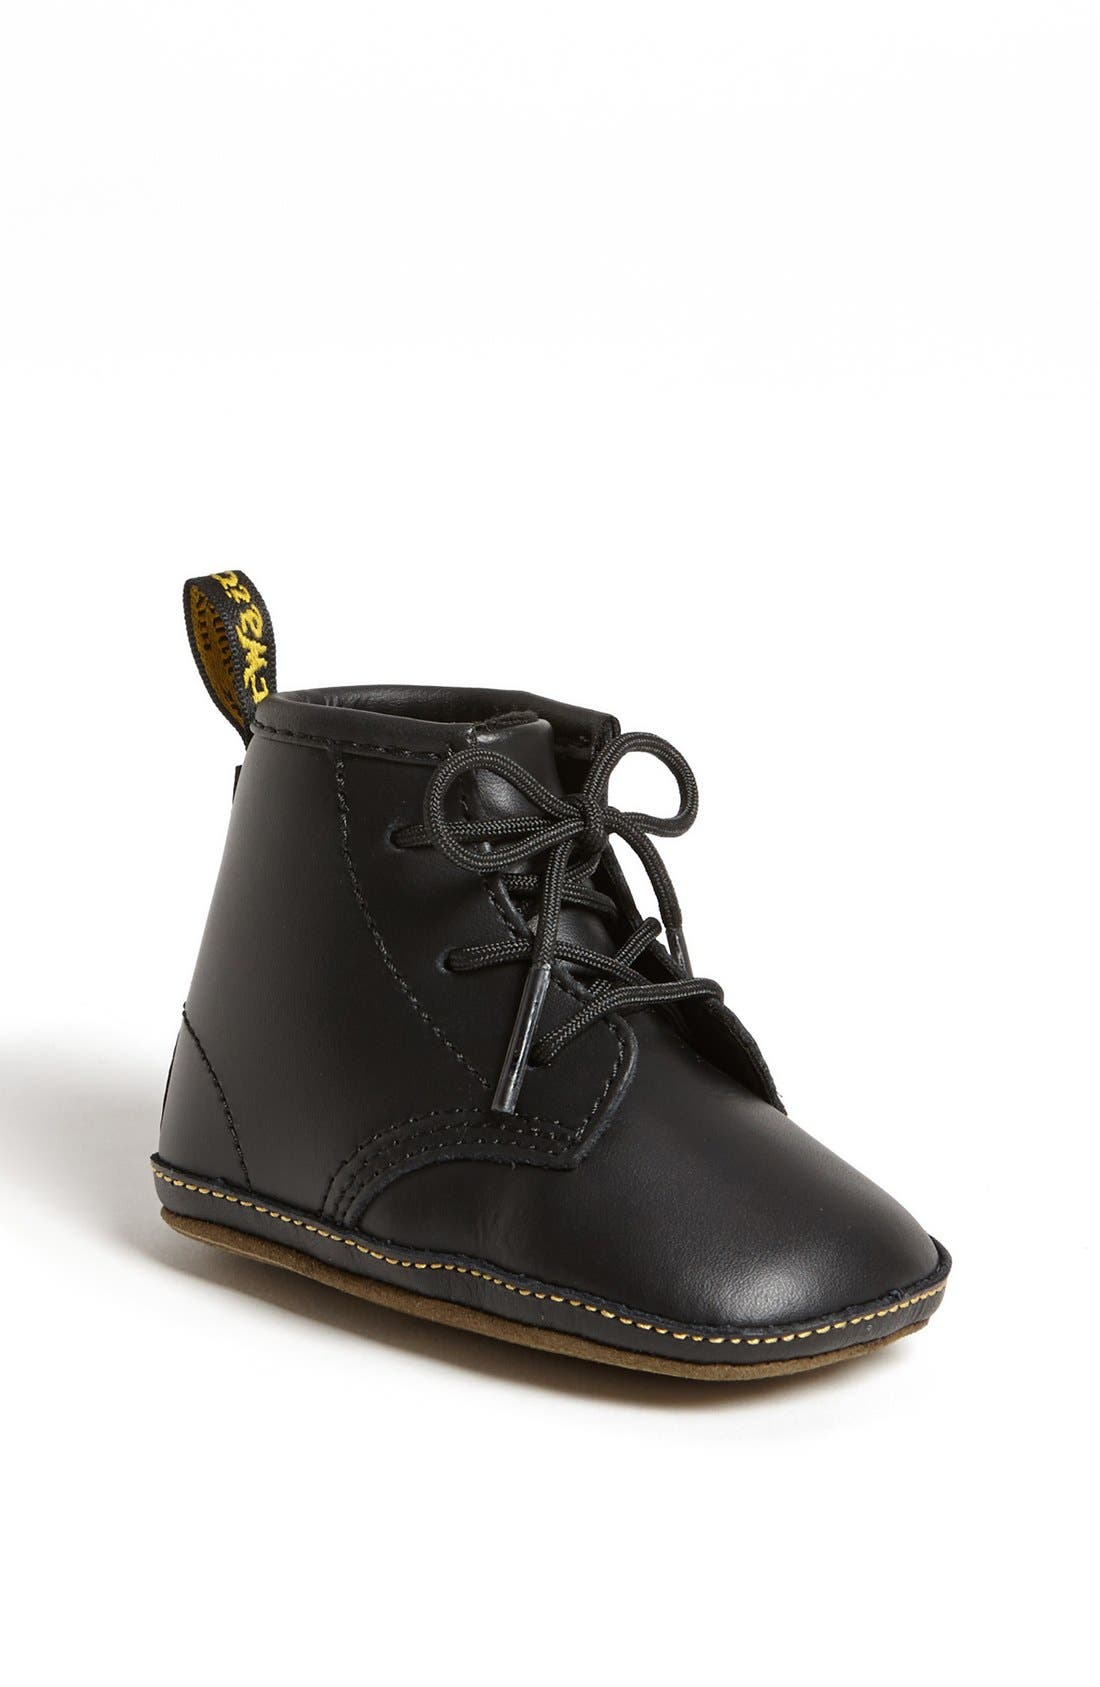 Main Image - Dr. Martens Crib Bootie (Baby)